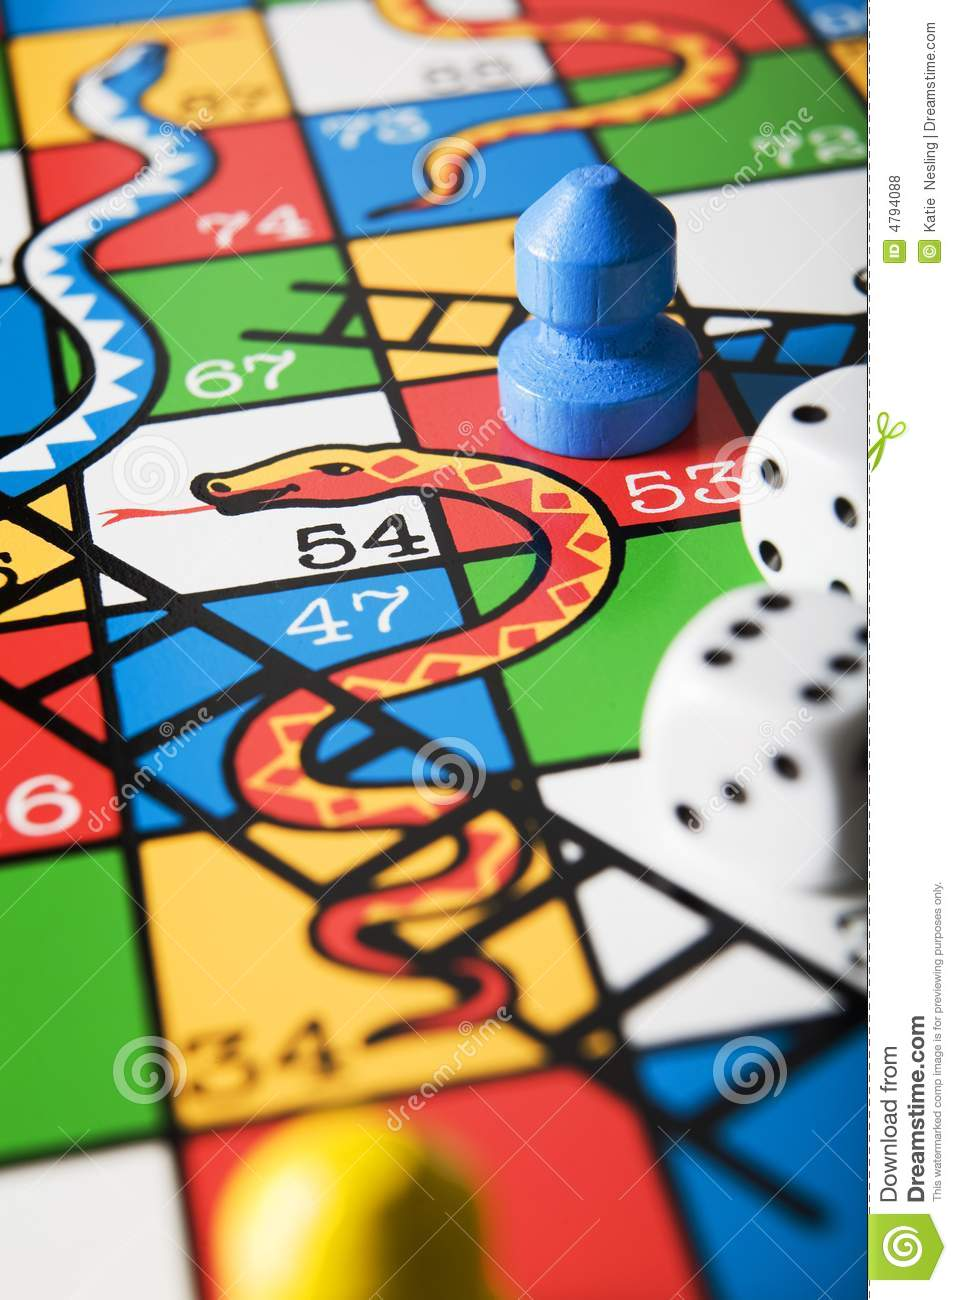 snakes and ladder board royalty free stock photos image 4794088